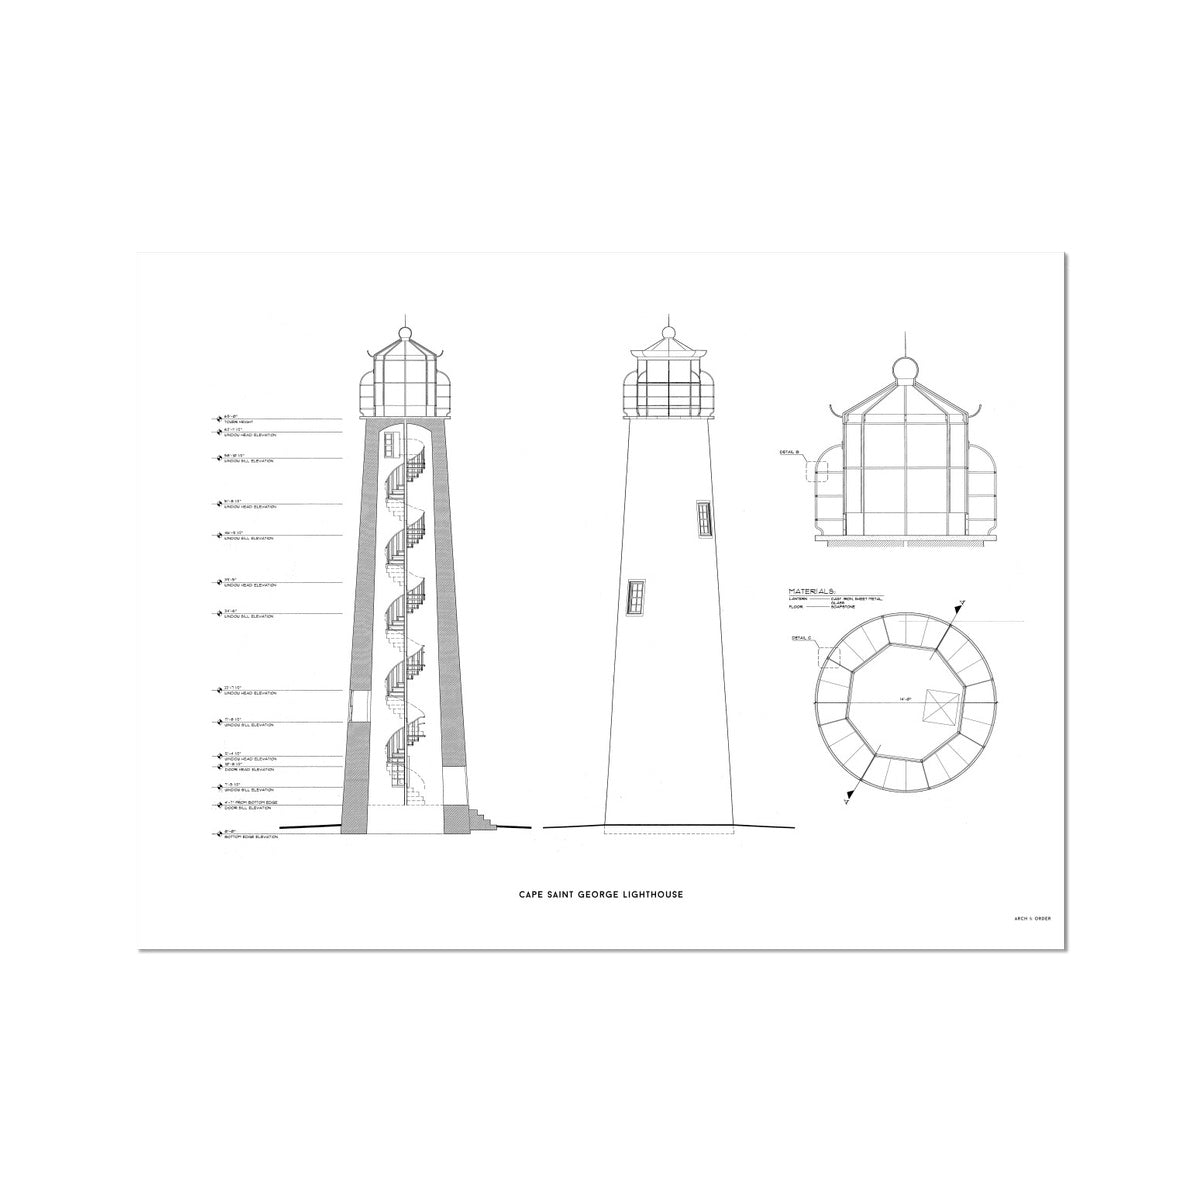 Cape Saint George Lighthouse - Southeast Elevation and Cross Section - White - German Etching Print